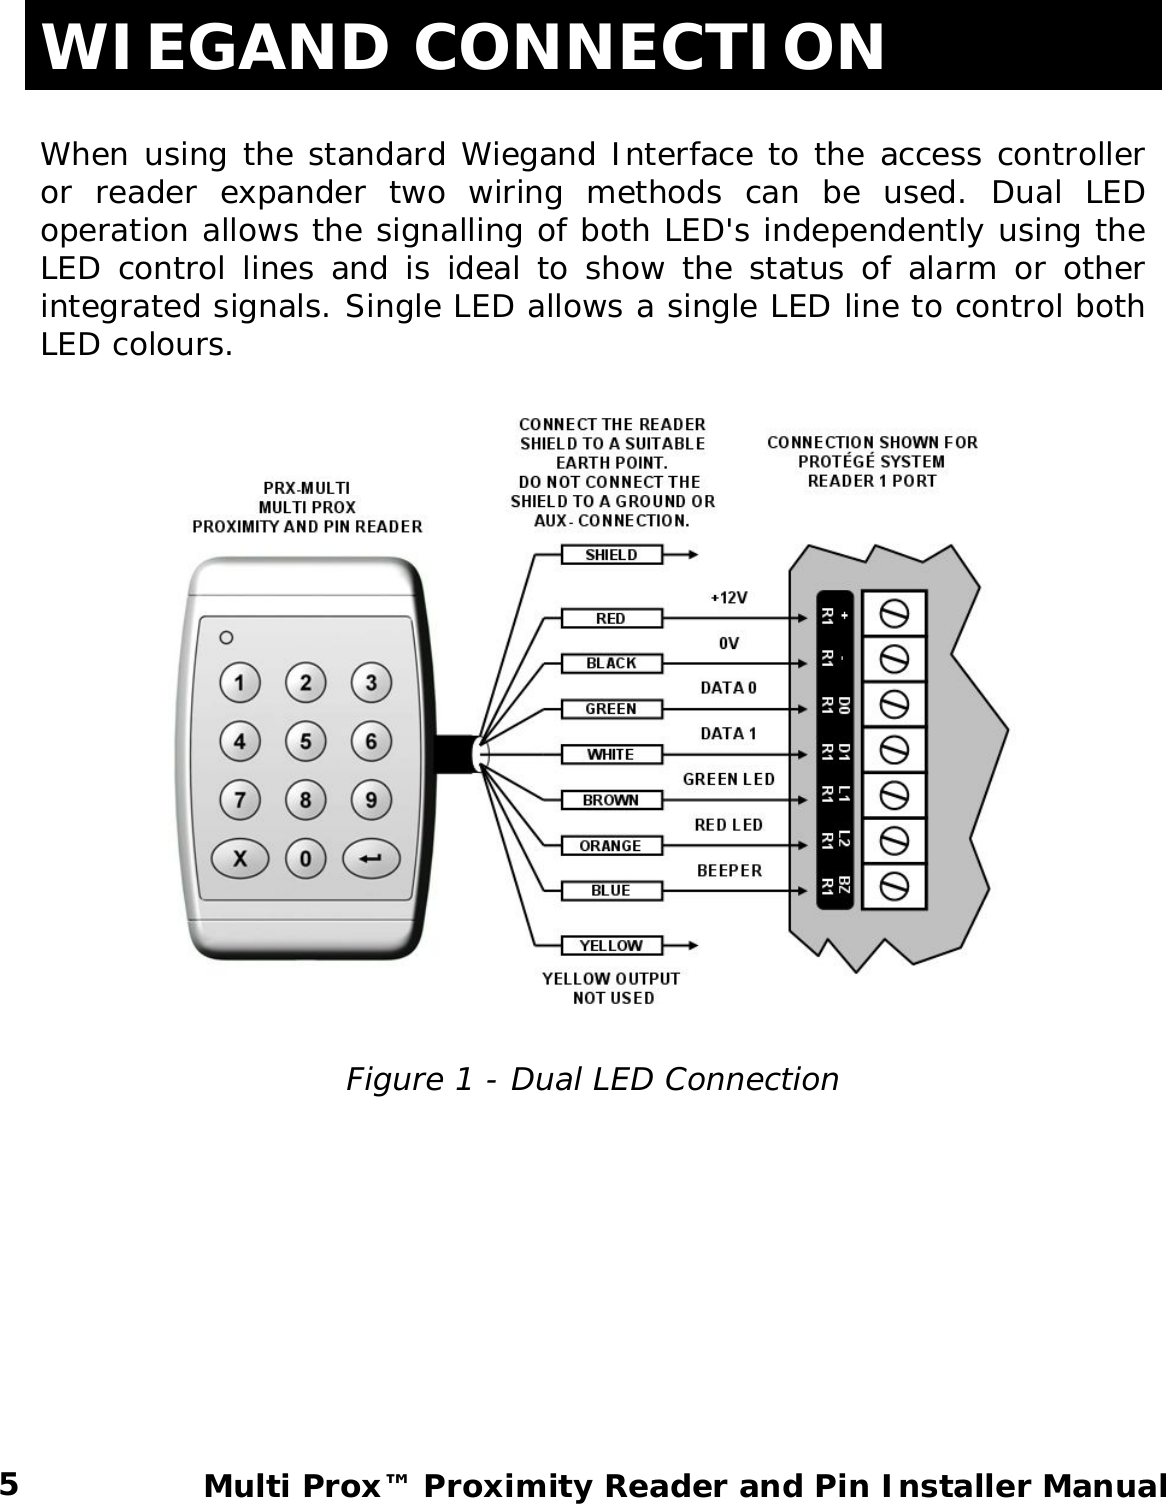 WIEGAND CONNECTION When using the standard Wiegand Interface to the access  controller or reader expander two